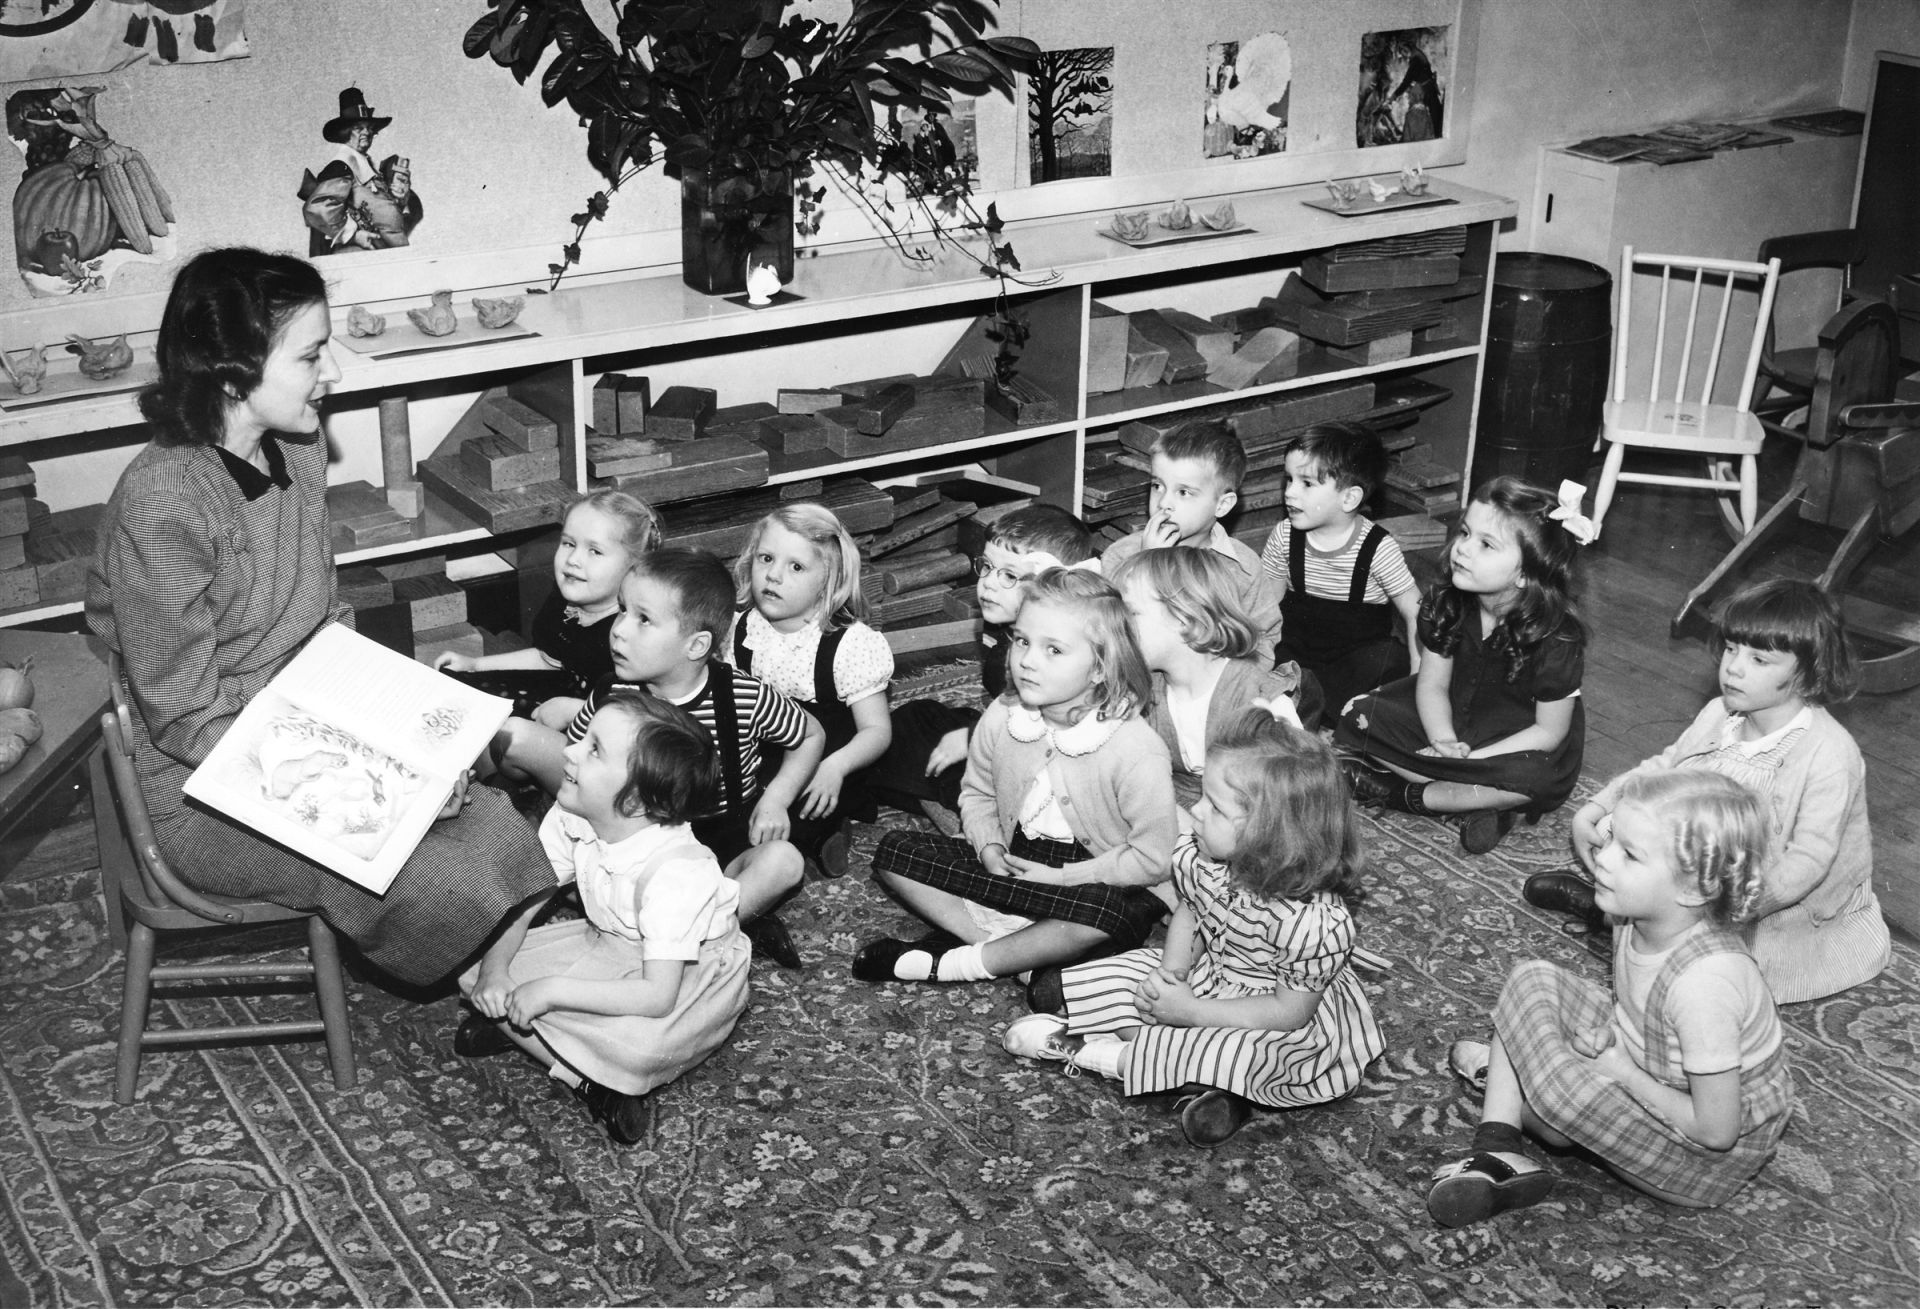 Kindergarten in the 1940s